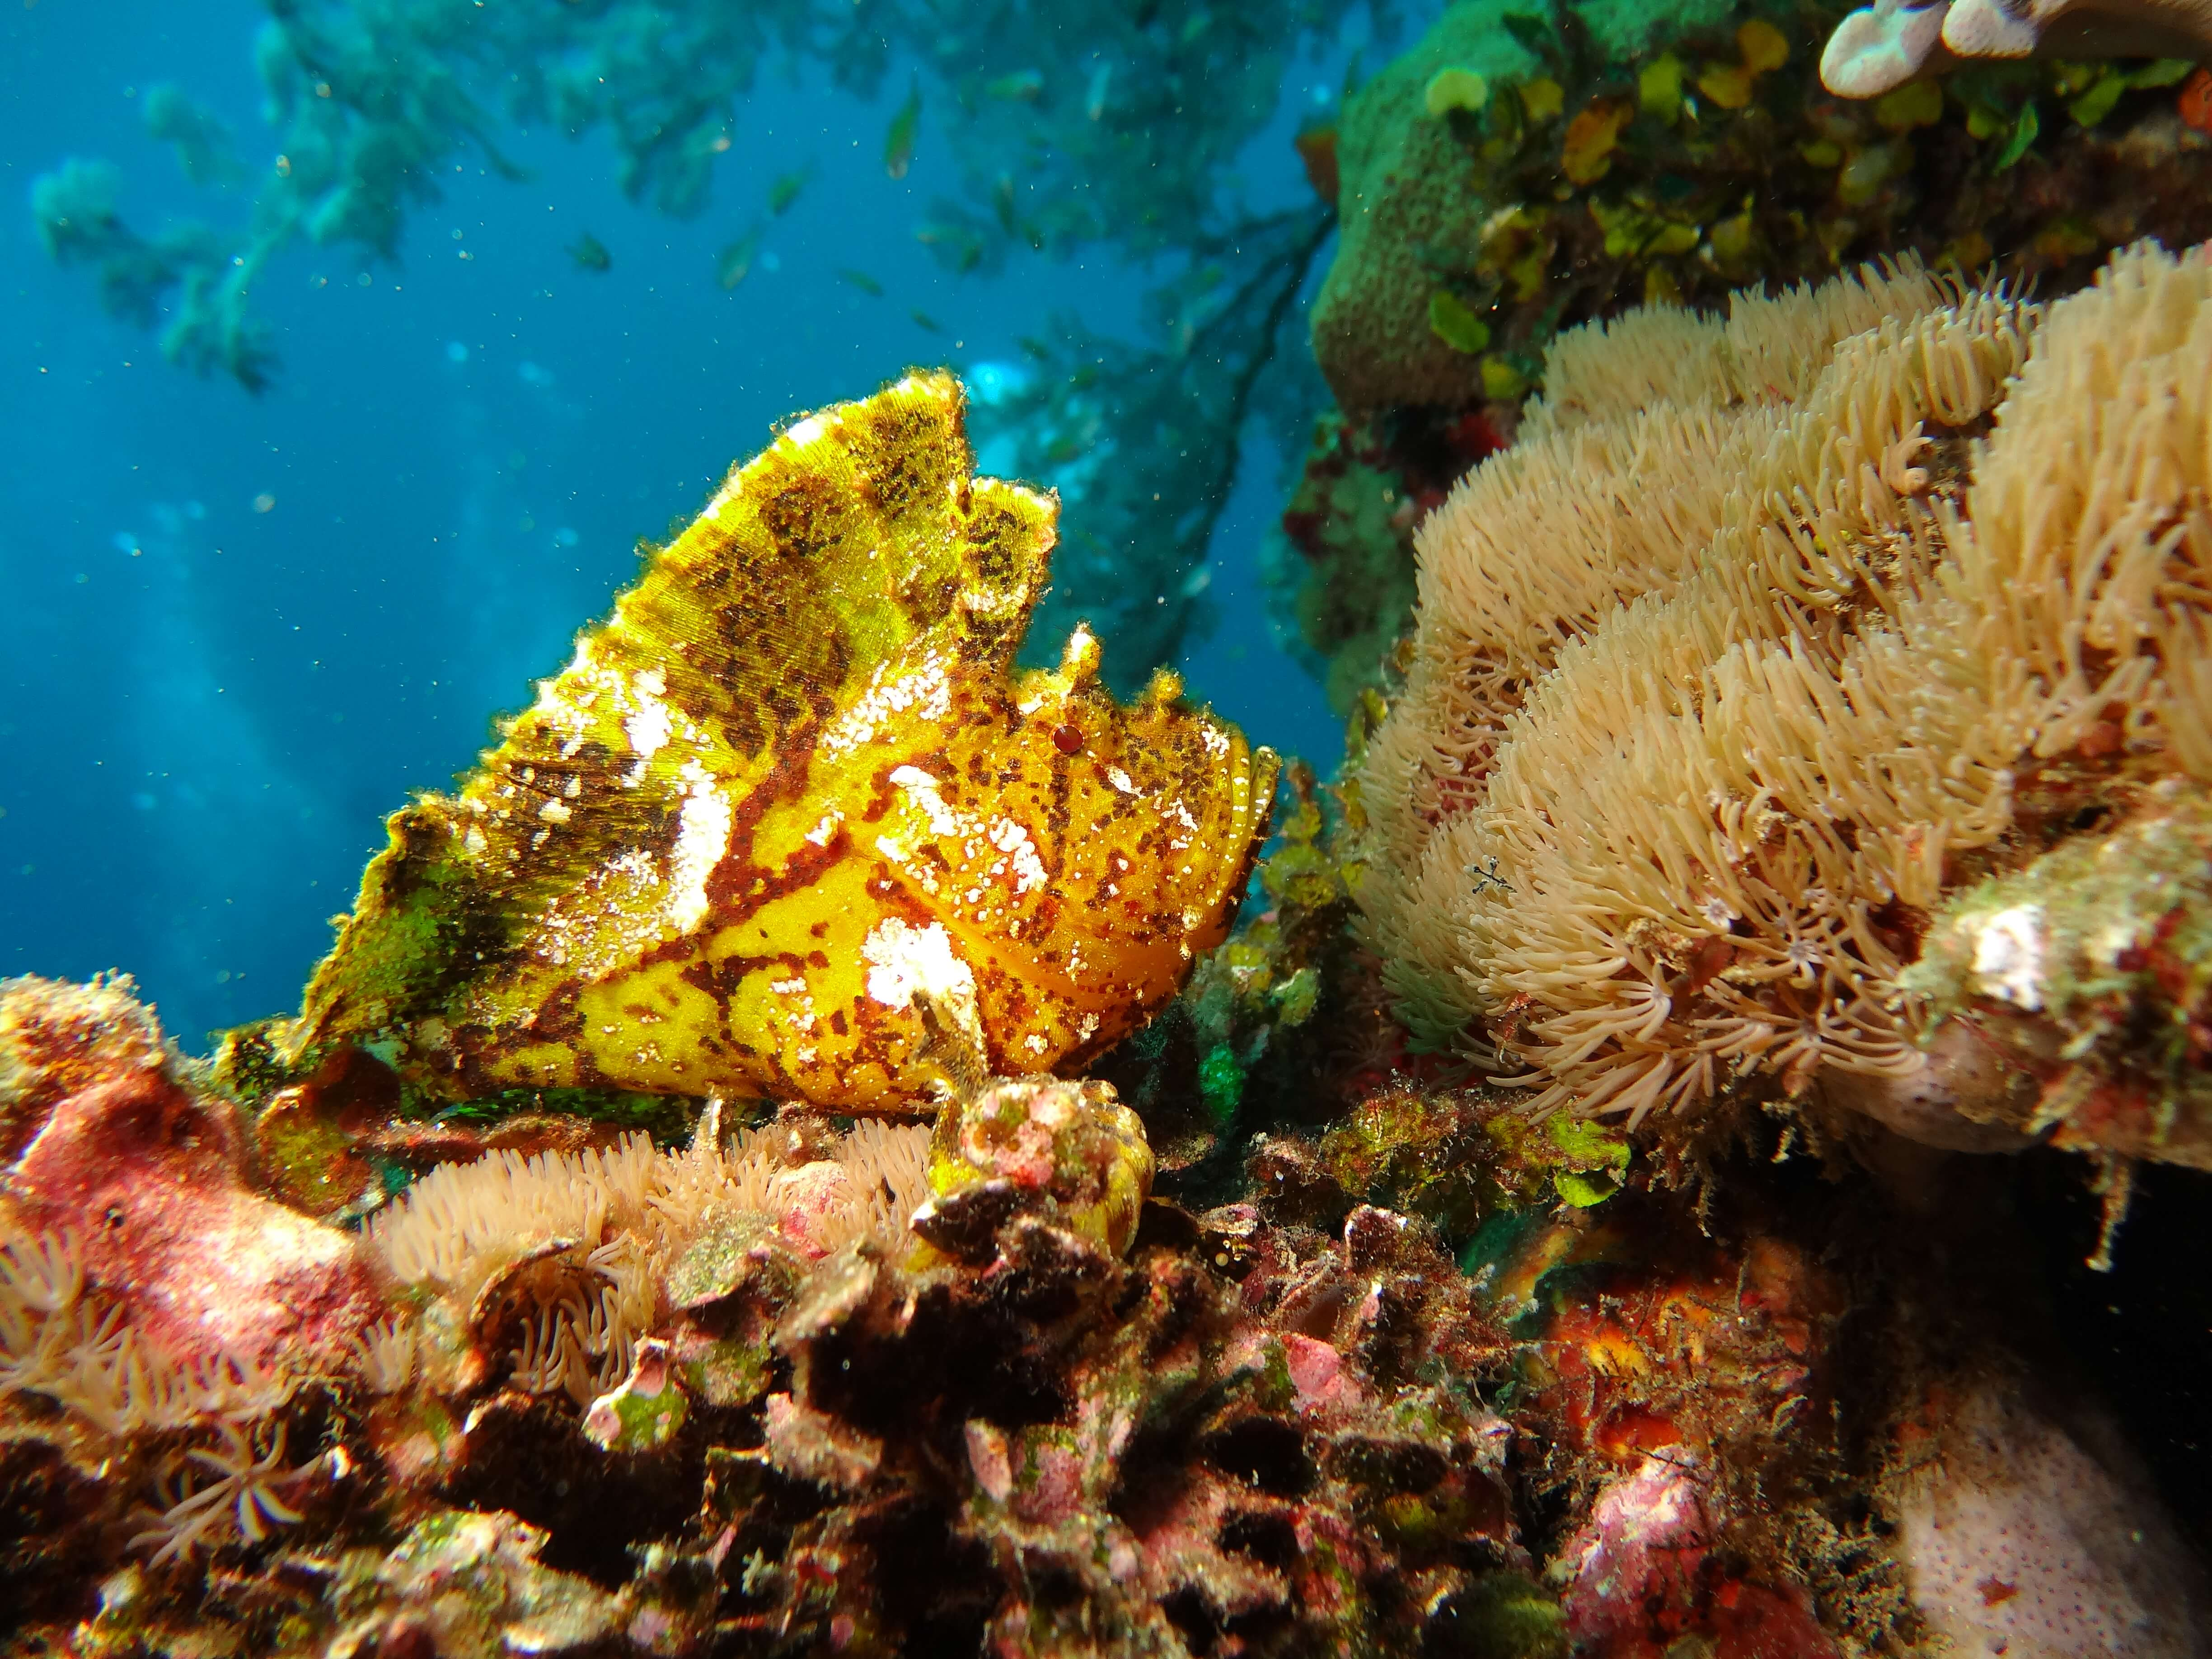 environmentally friendly - don't touch coral reefs